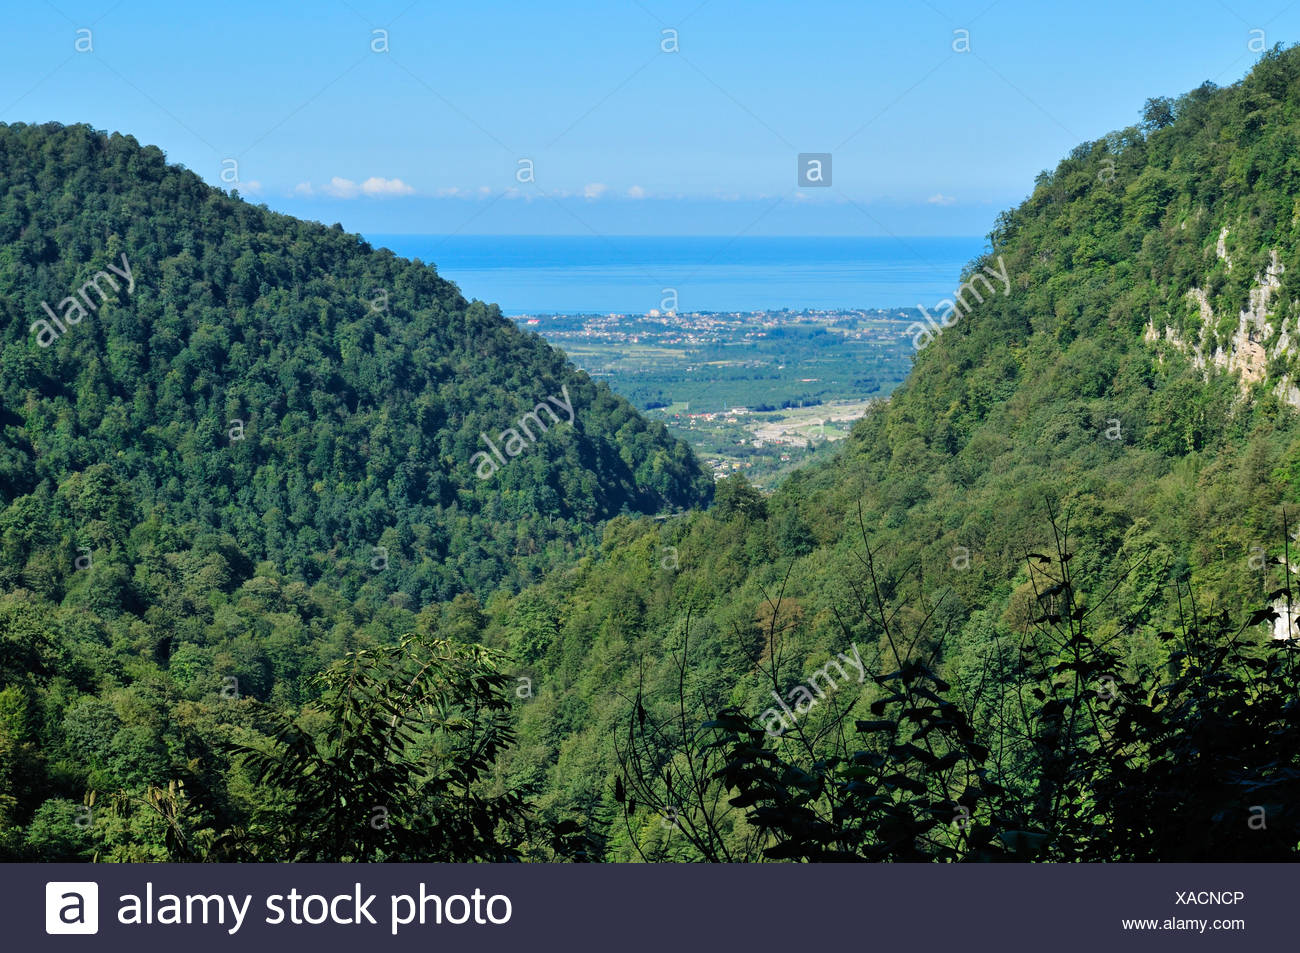 Heavily forested mountains with view over the Caspian Sea, Alborz Mountains, Mazandaran, Iran, Asia - Stock Image